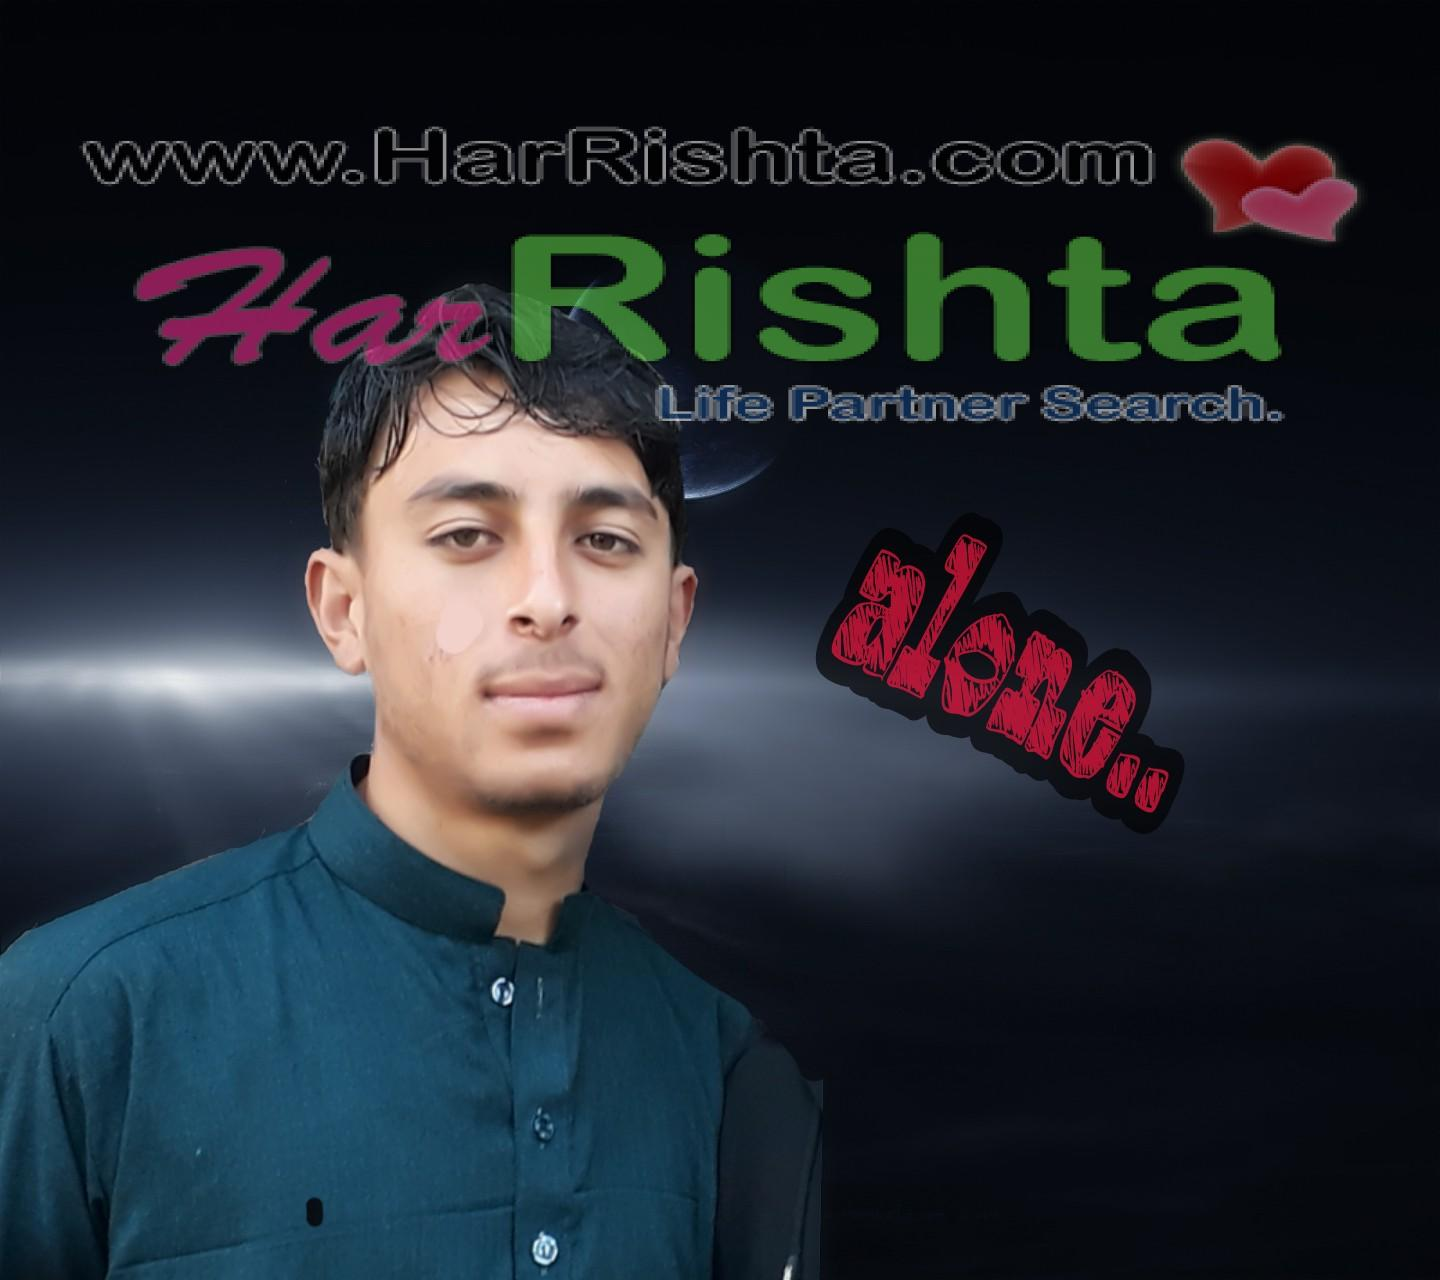 Jafari Boy Rishta in Other